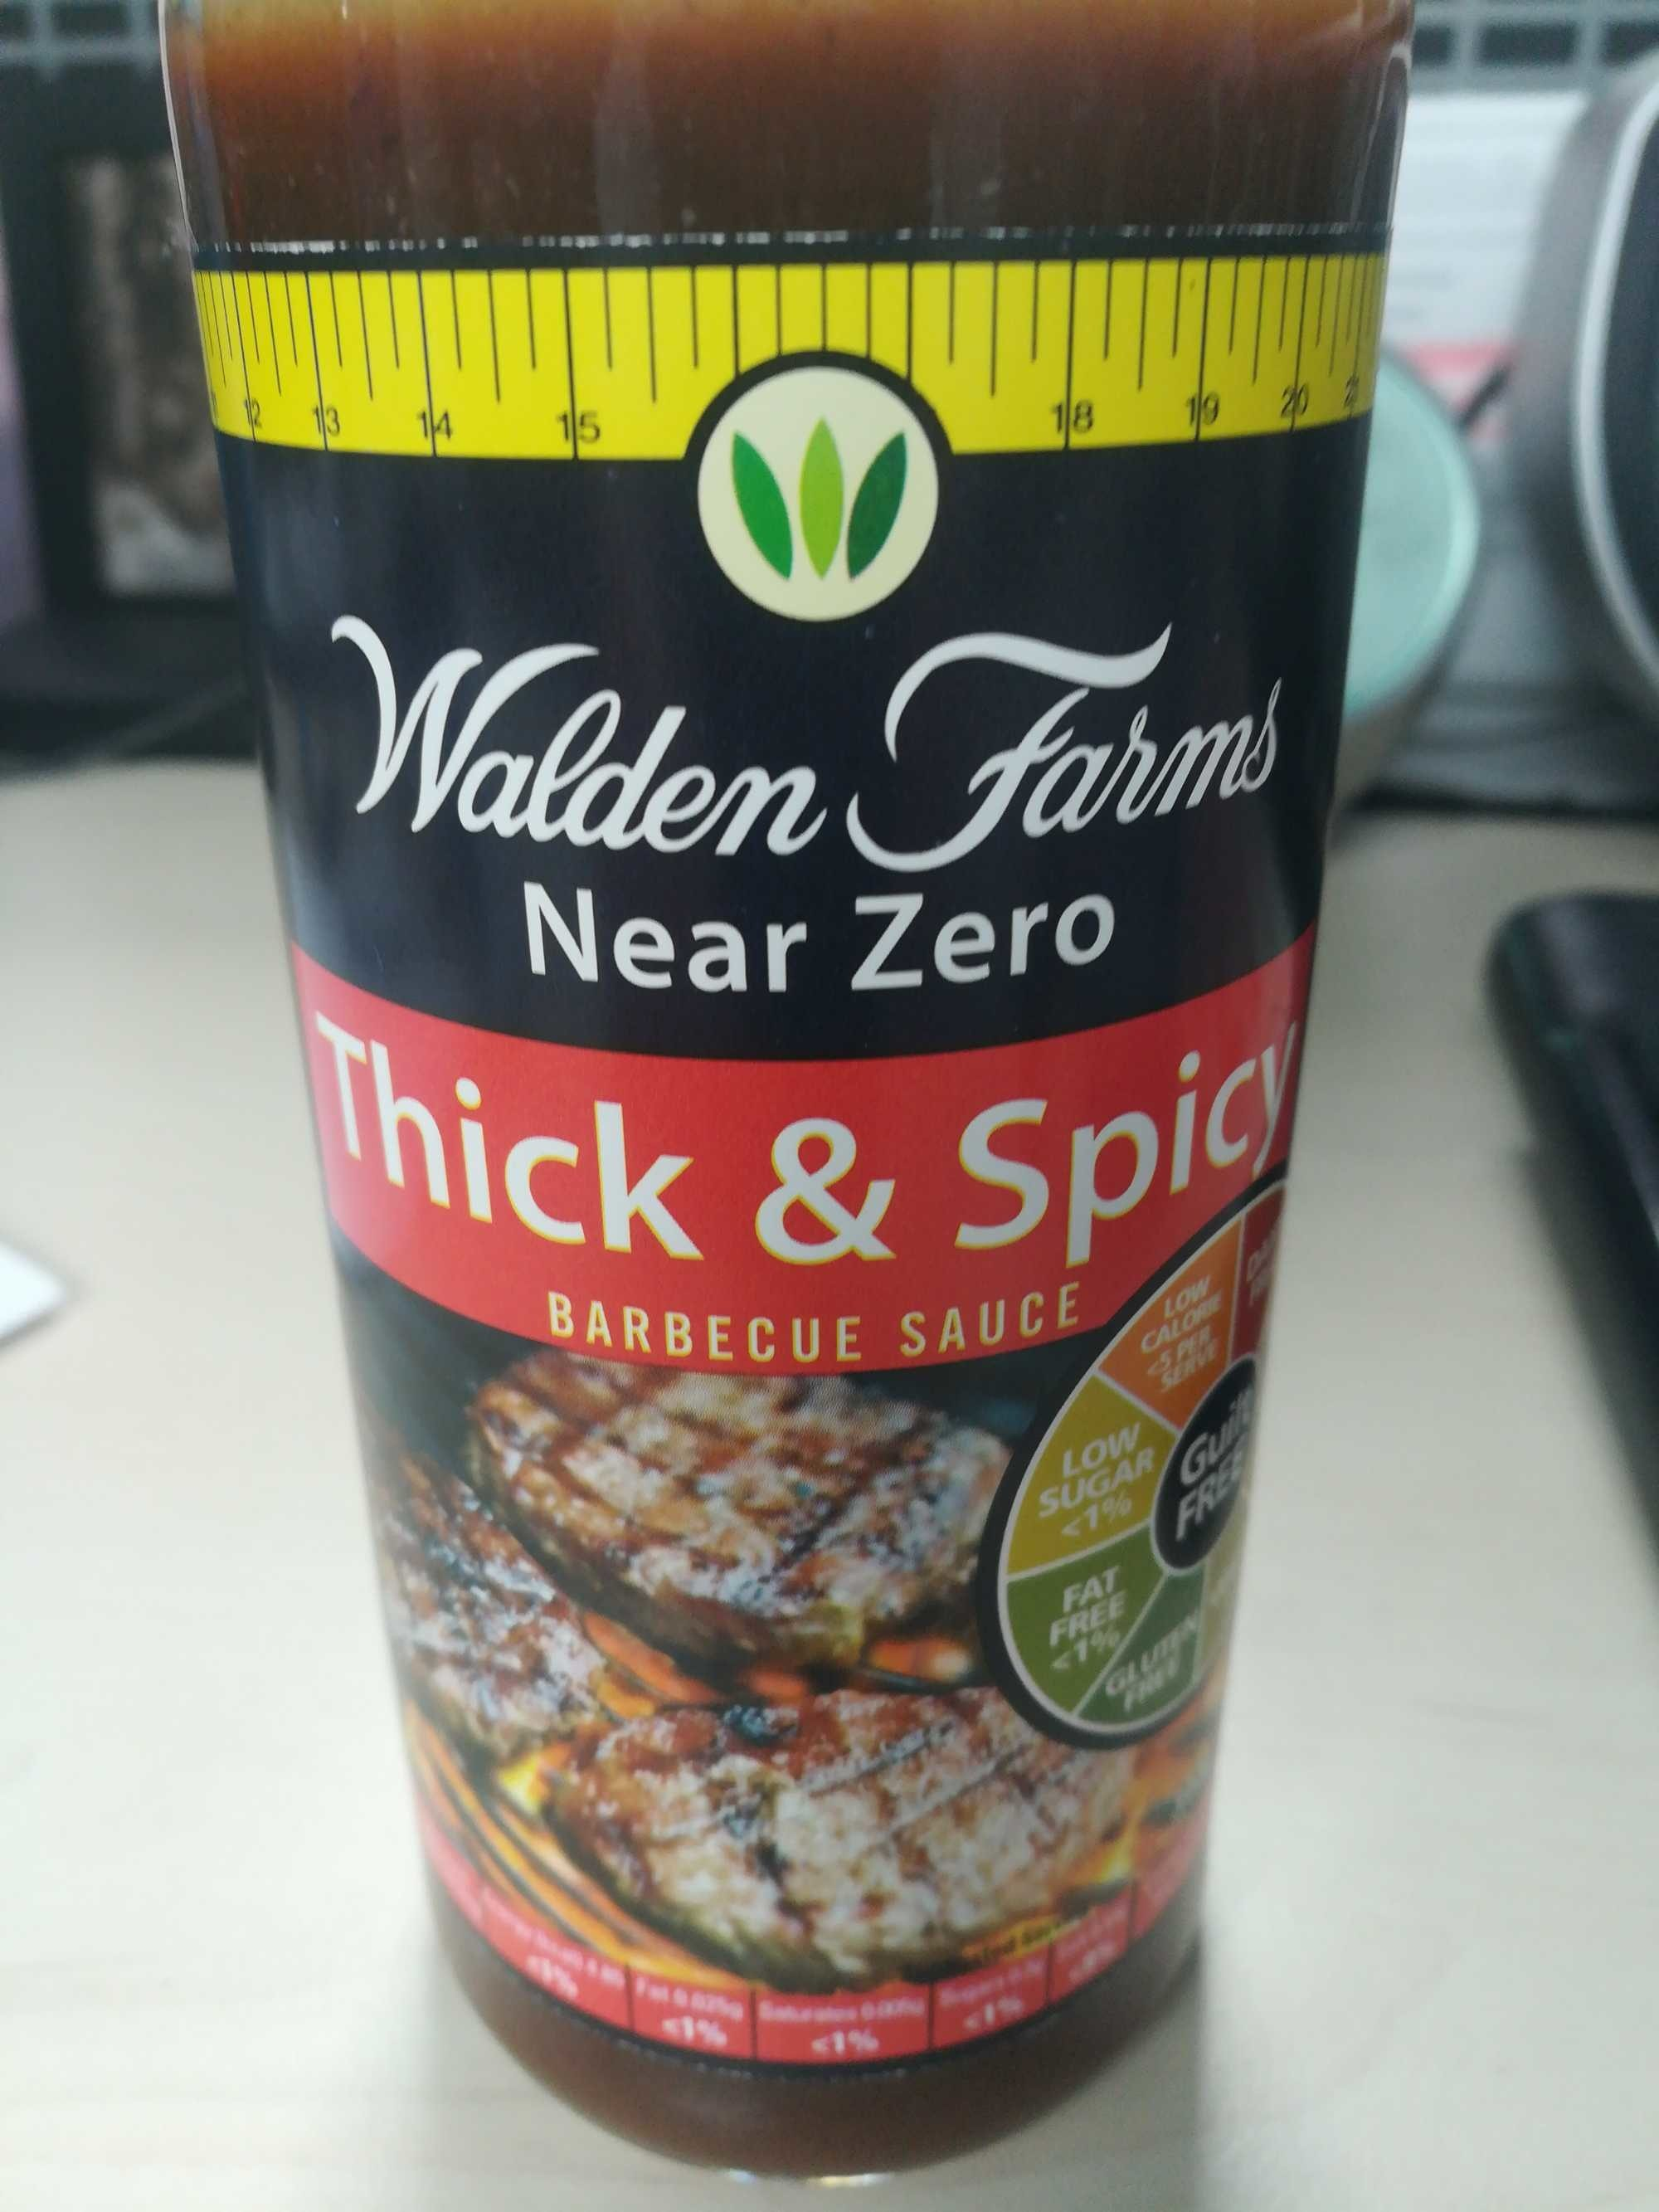 Thick & spicy barbecue sauce - Product - en